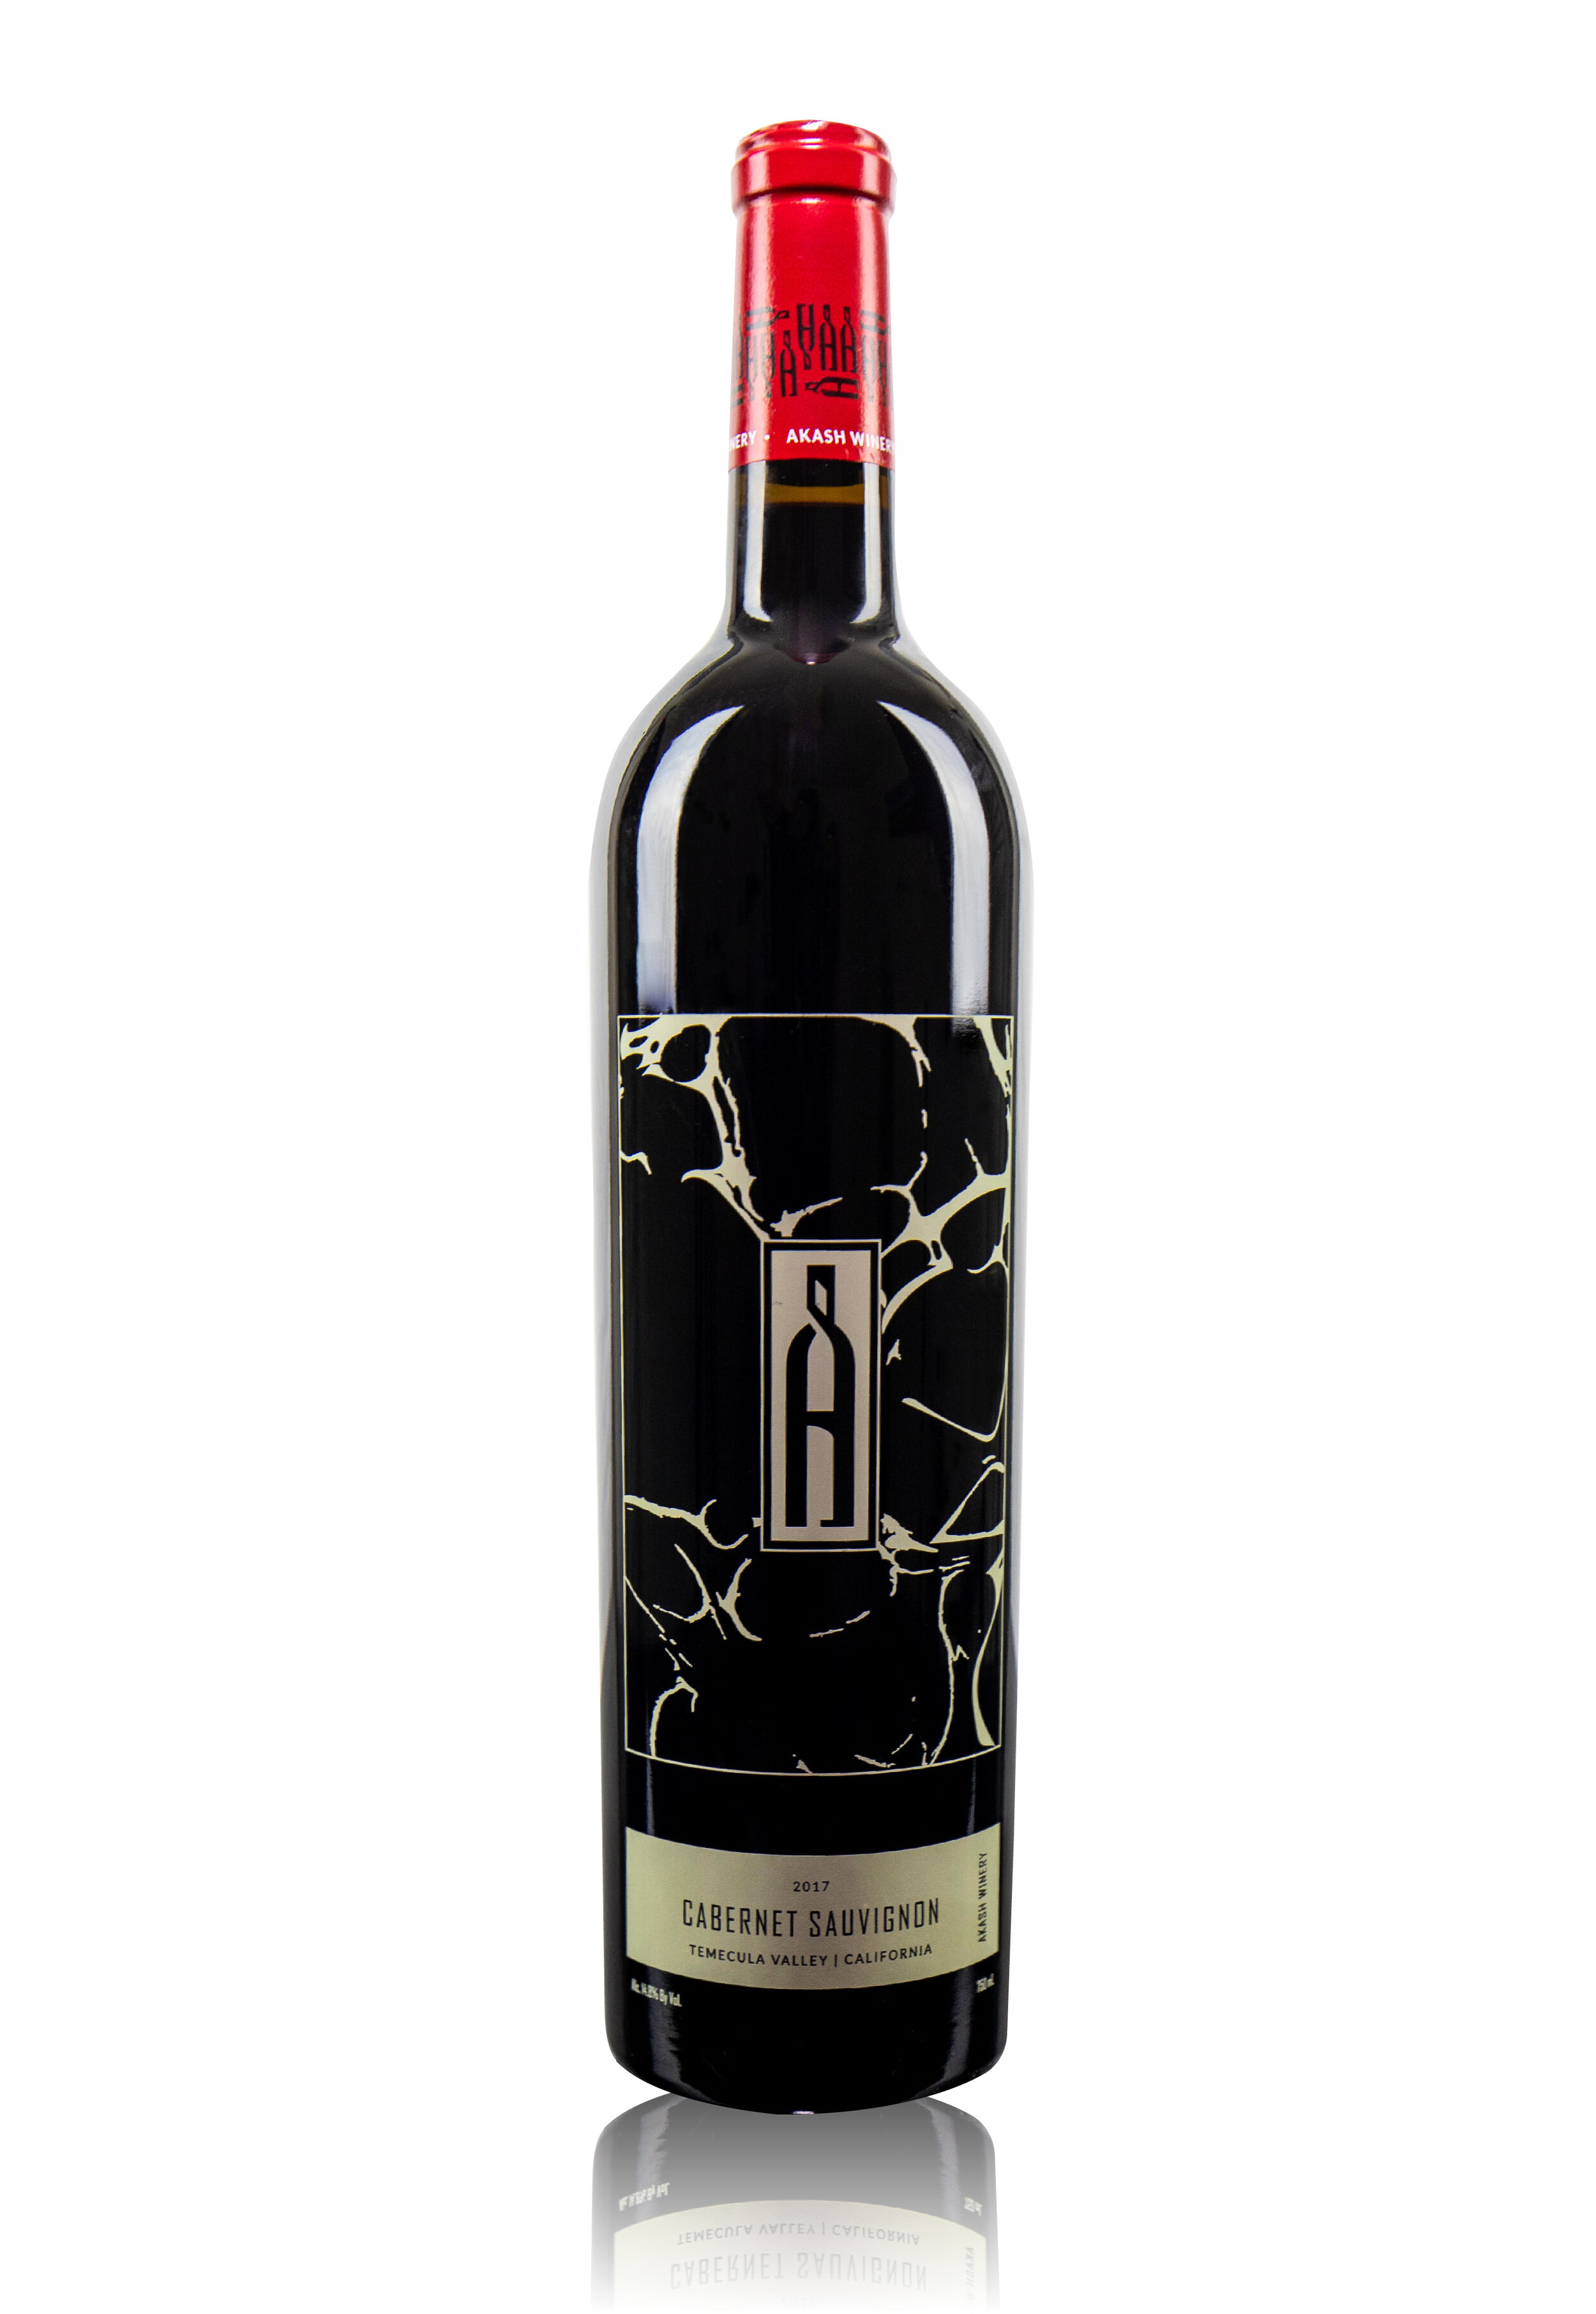 2017 Cabernet Sauvignon - Notes: A luxurious and elegant wine perfumed with hints of cherry, caramel, green bell pepper, and mushroom. The palate is rich and vibrant with a fruity finish.Vintage: 2017Alcohol: 14.80%Volume: 750 ml